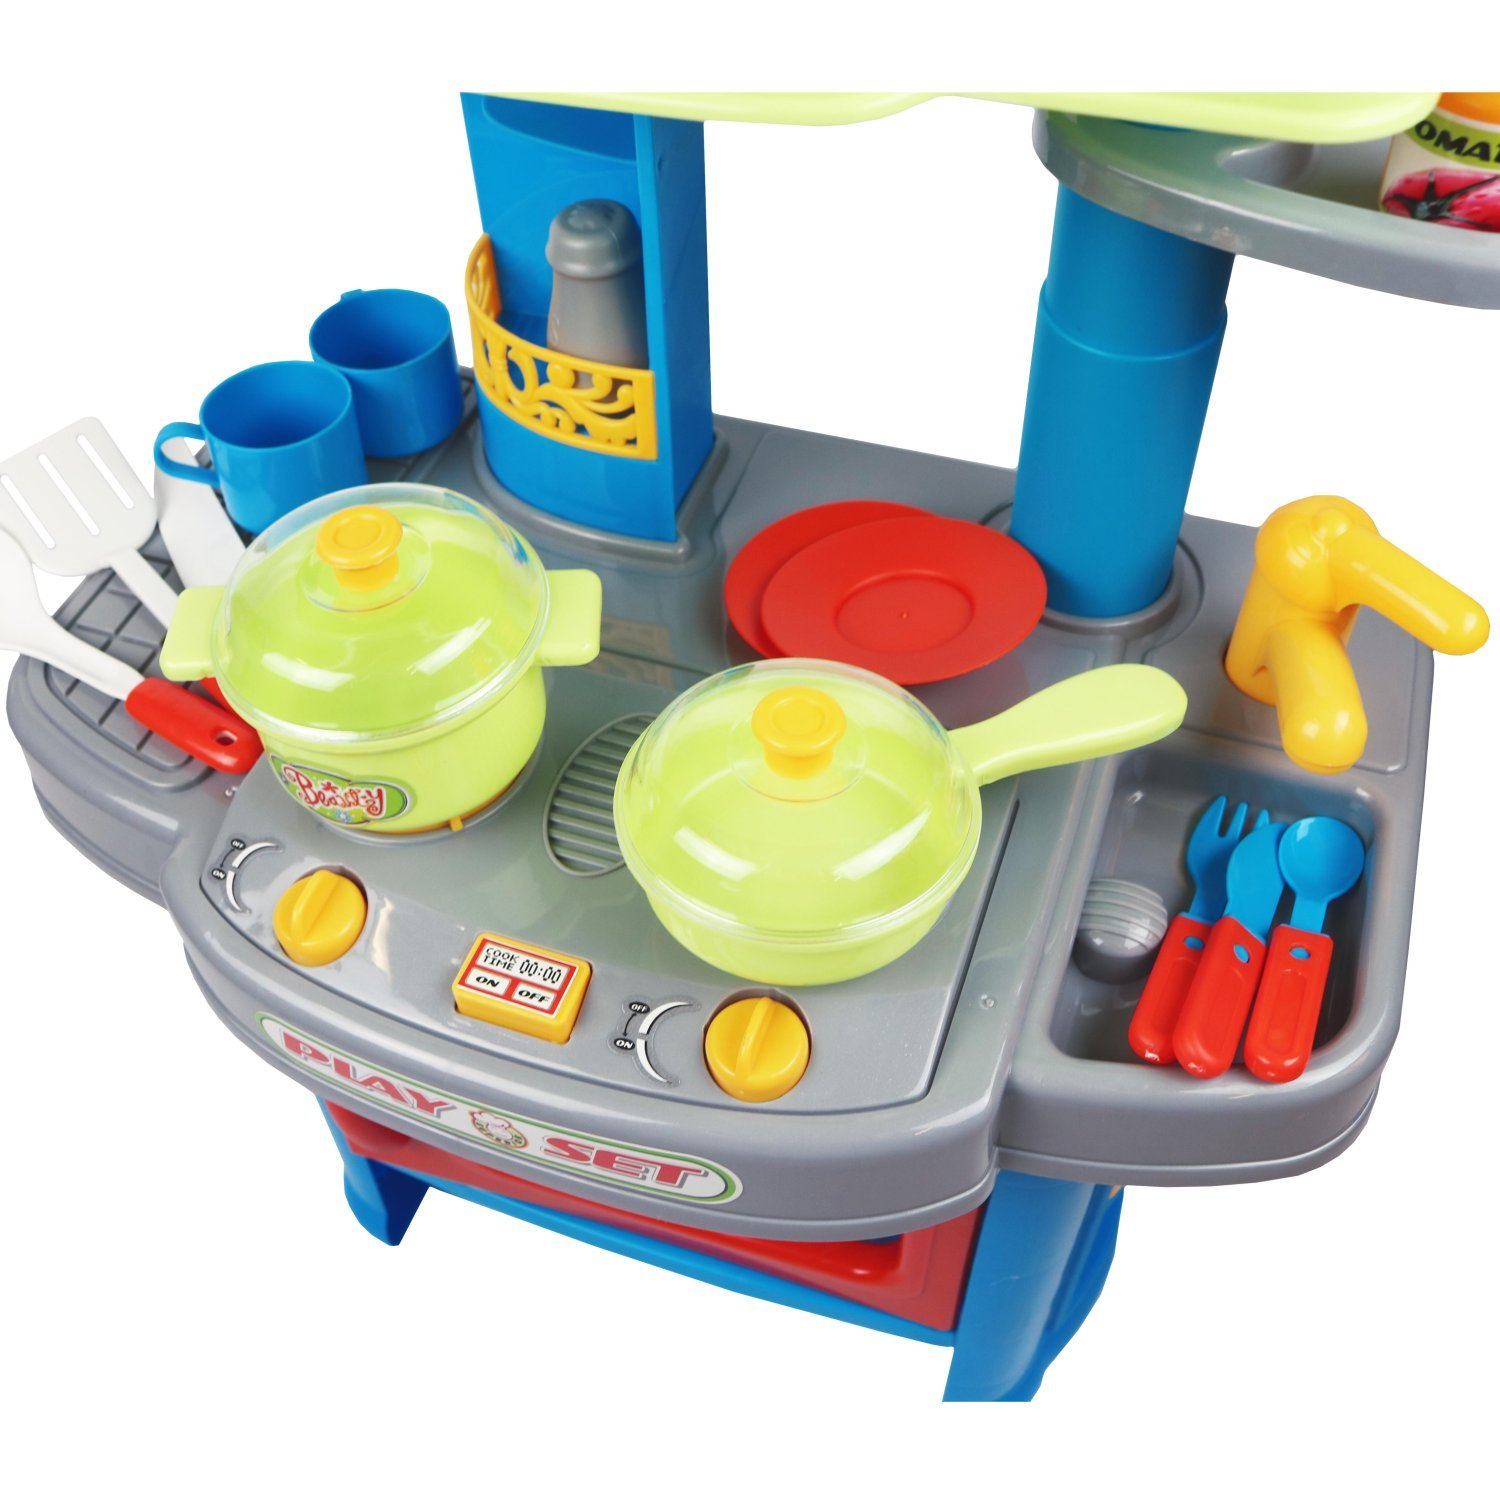 Electronic Kitchen Set: Childrens Kids Roleplay Electronic Kitchen Cooking Playset